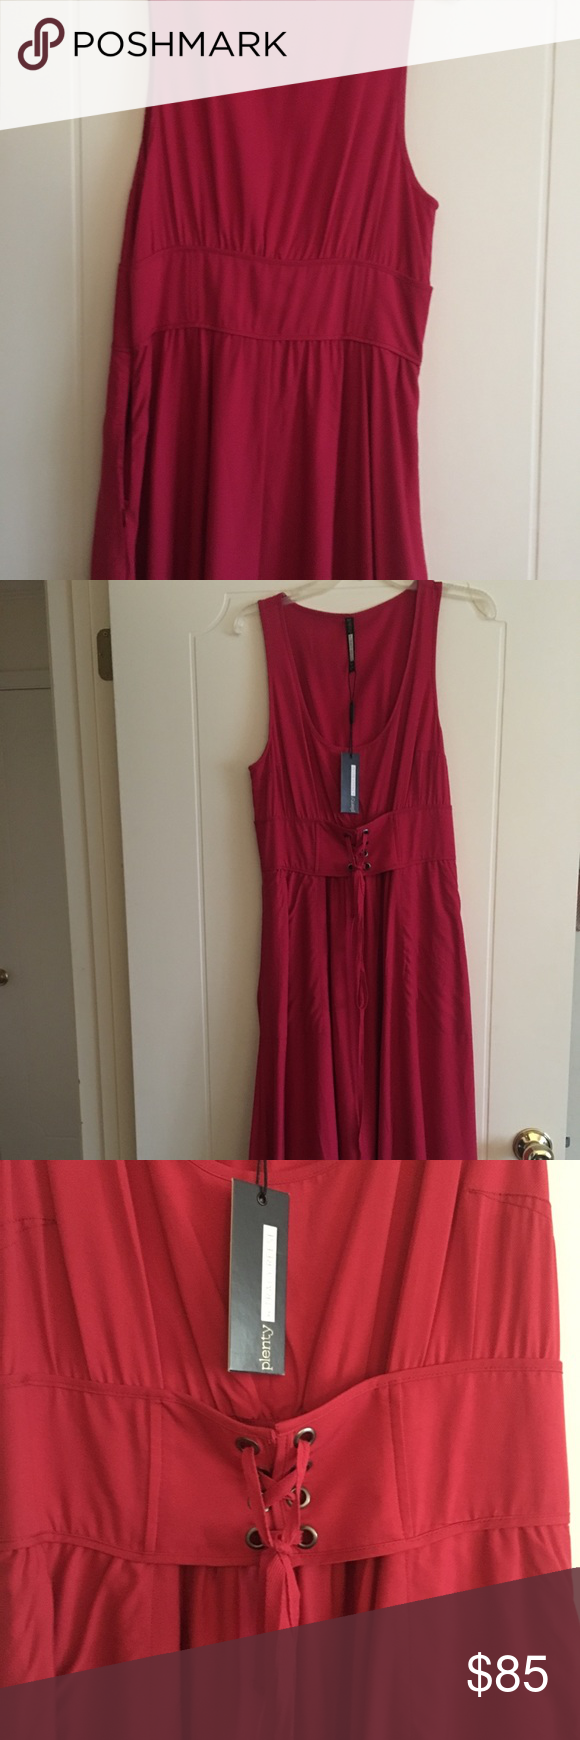 Tracy reese anthropologie long dress tracey reese beautiful red long